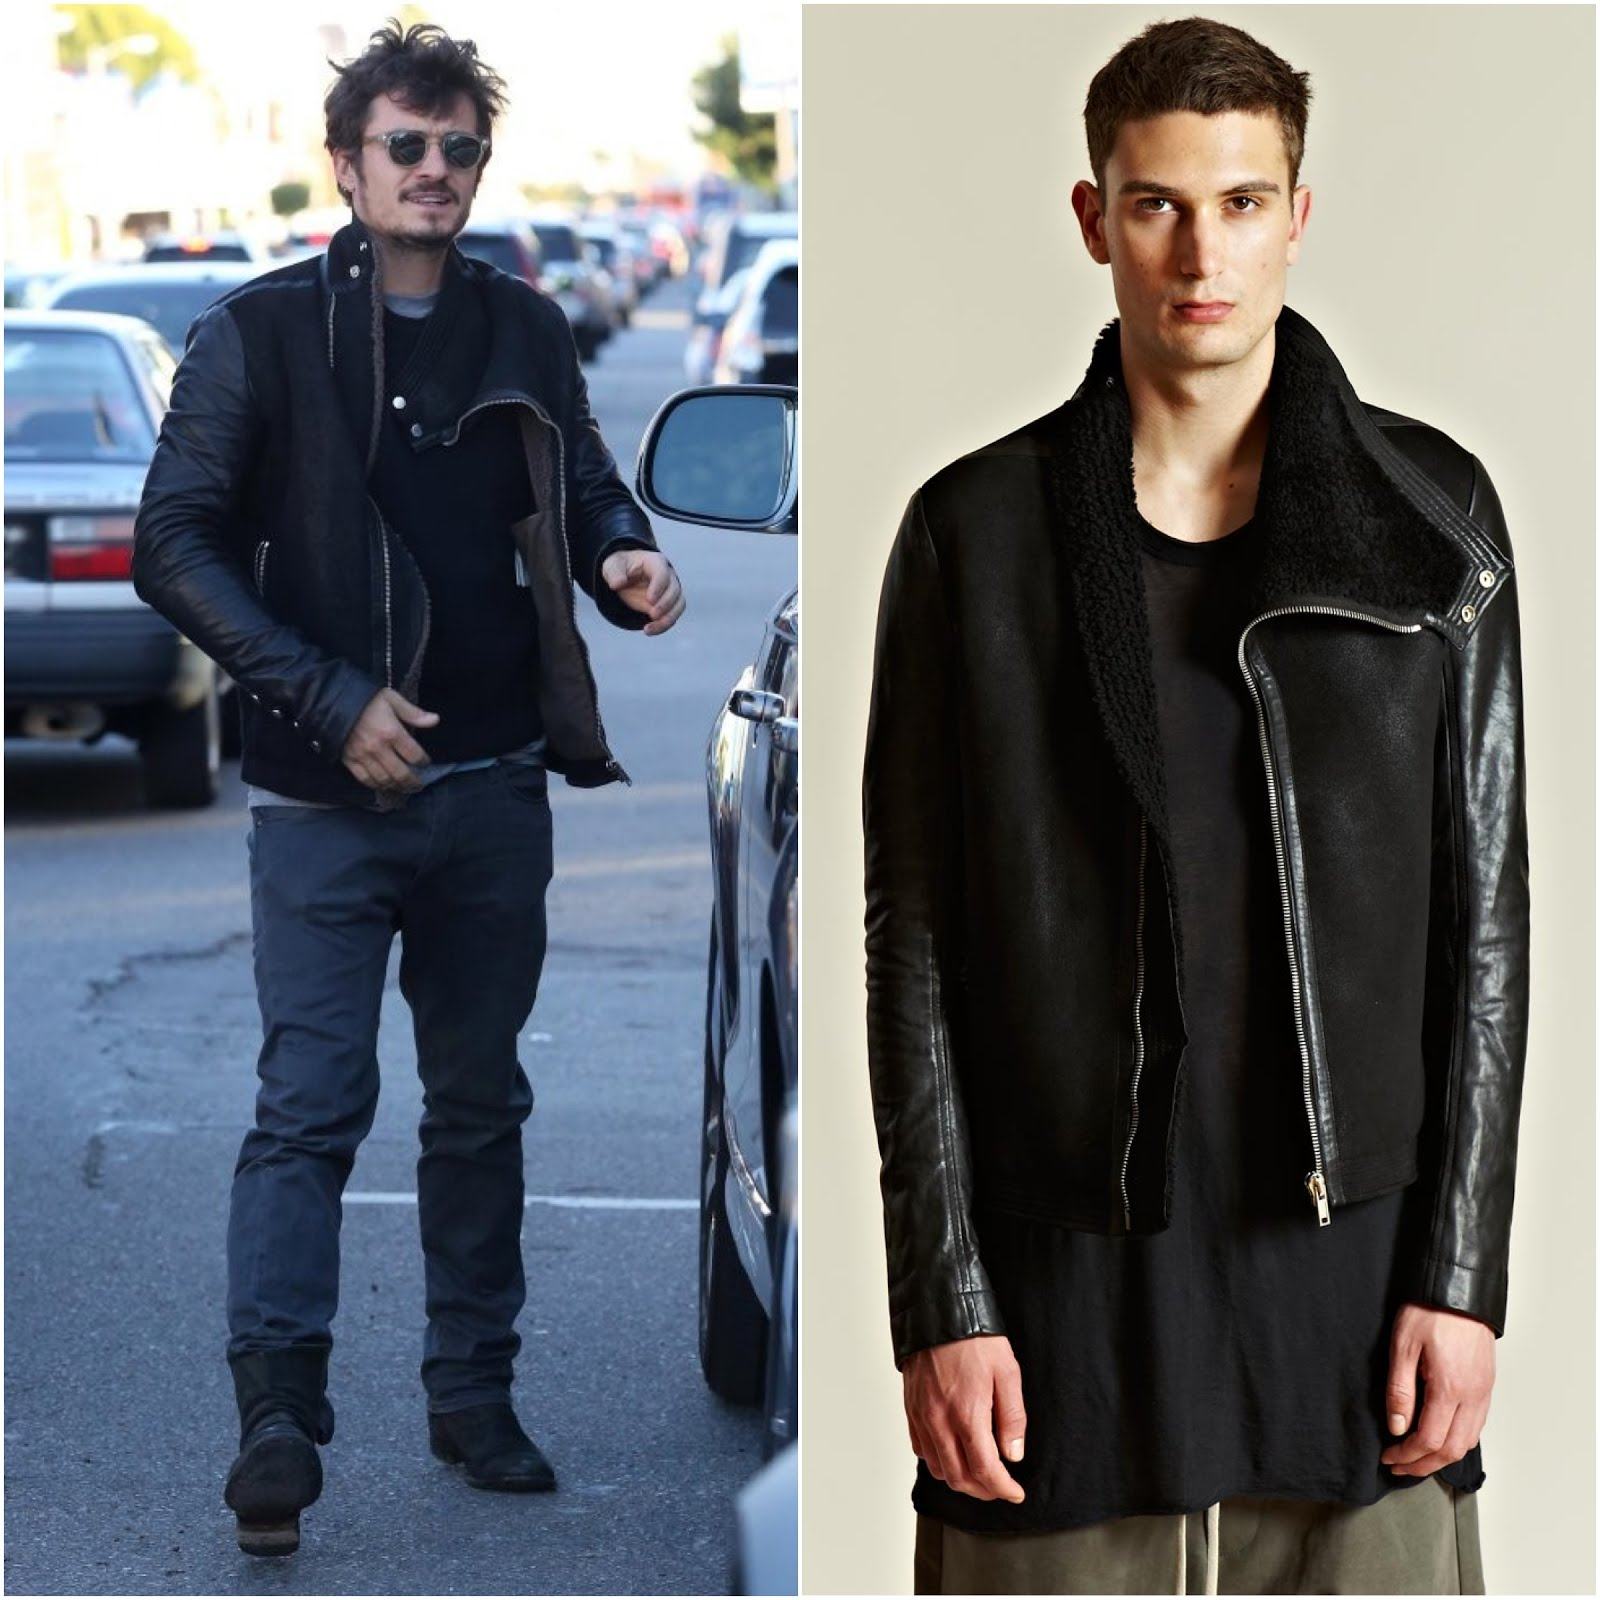 00O00 London Menswear Blog Orlando Bloom in Rick Owens men's Calfskin And Lamb Leather Mountain Jacket from A/W 12 collection in black - Out and about in Beverly Hills